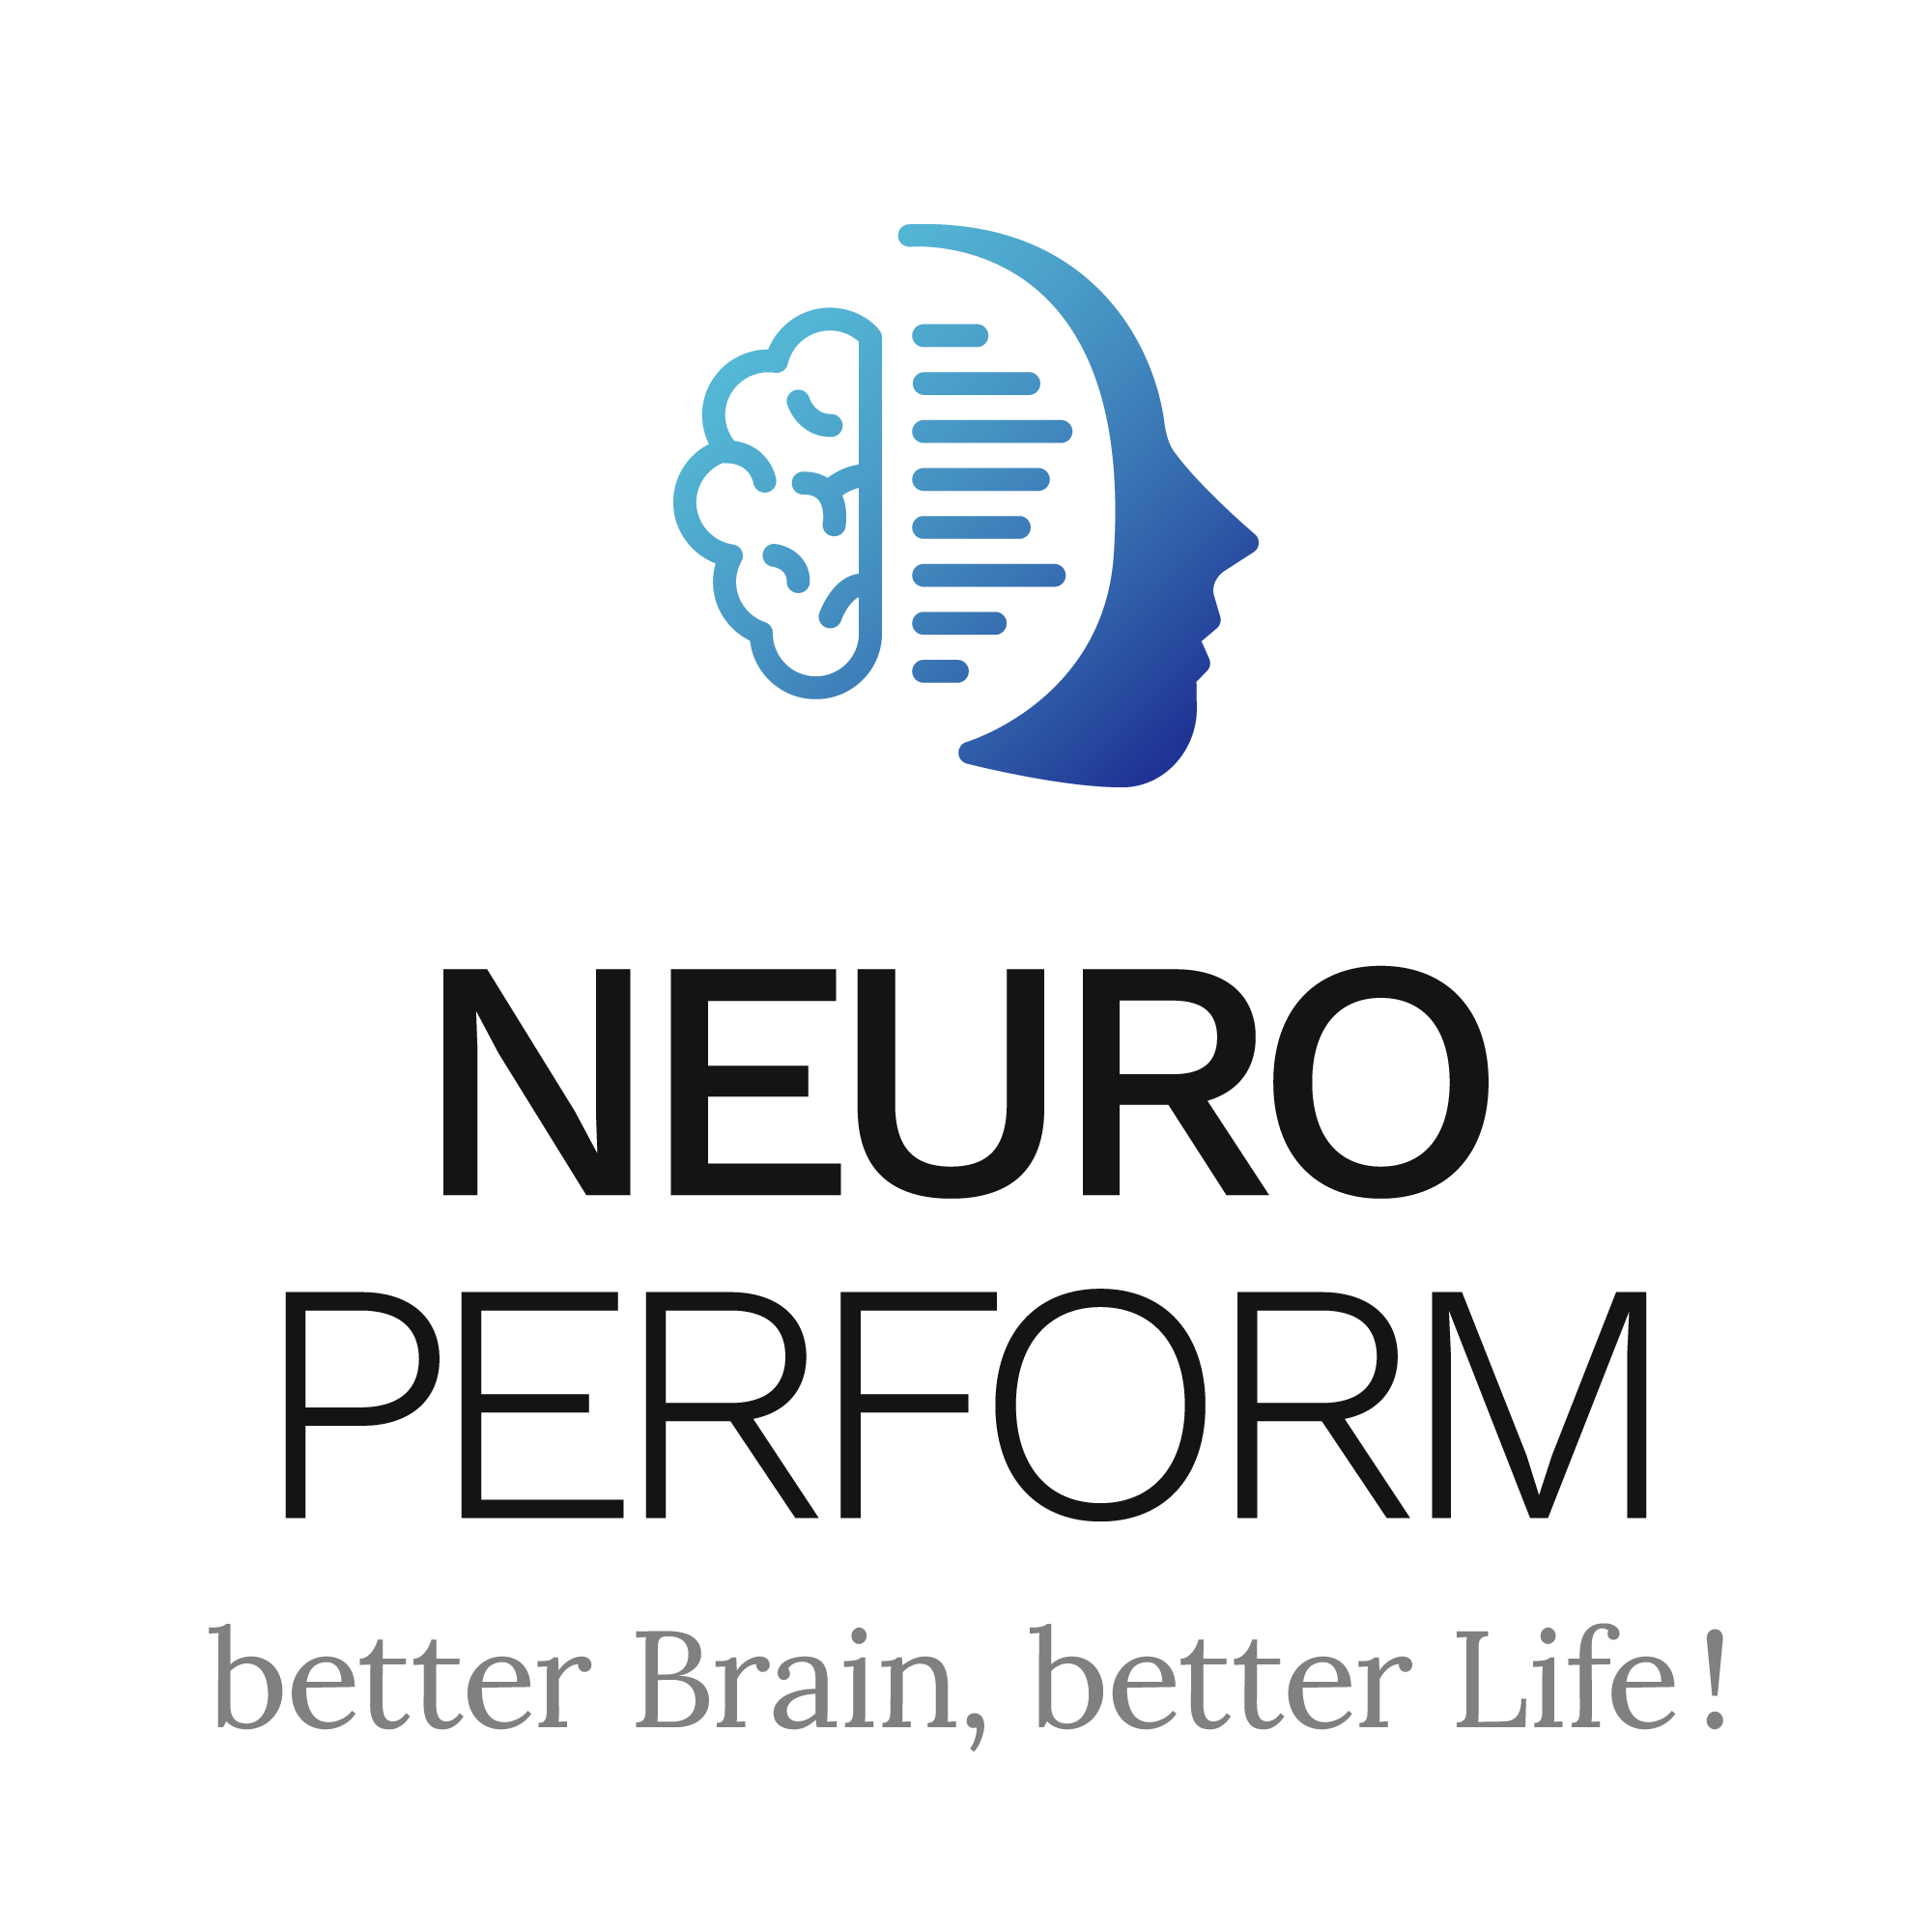 Neuroperform - Bio-Neurofeedback - Hypnose